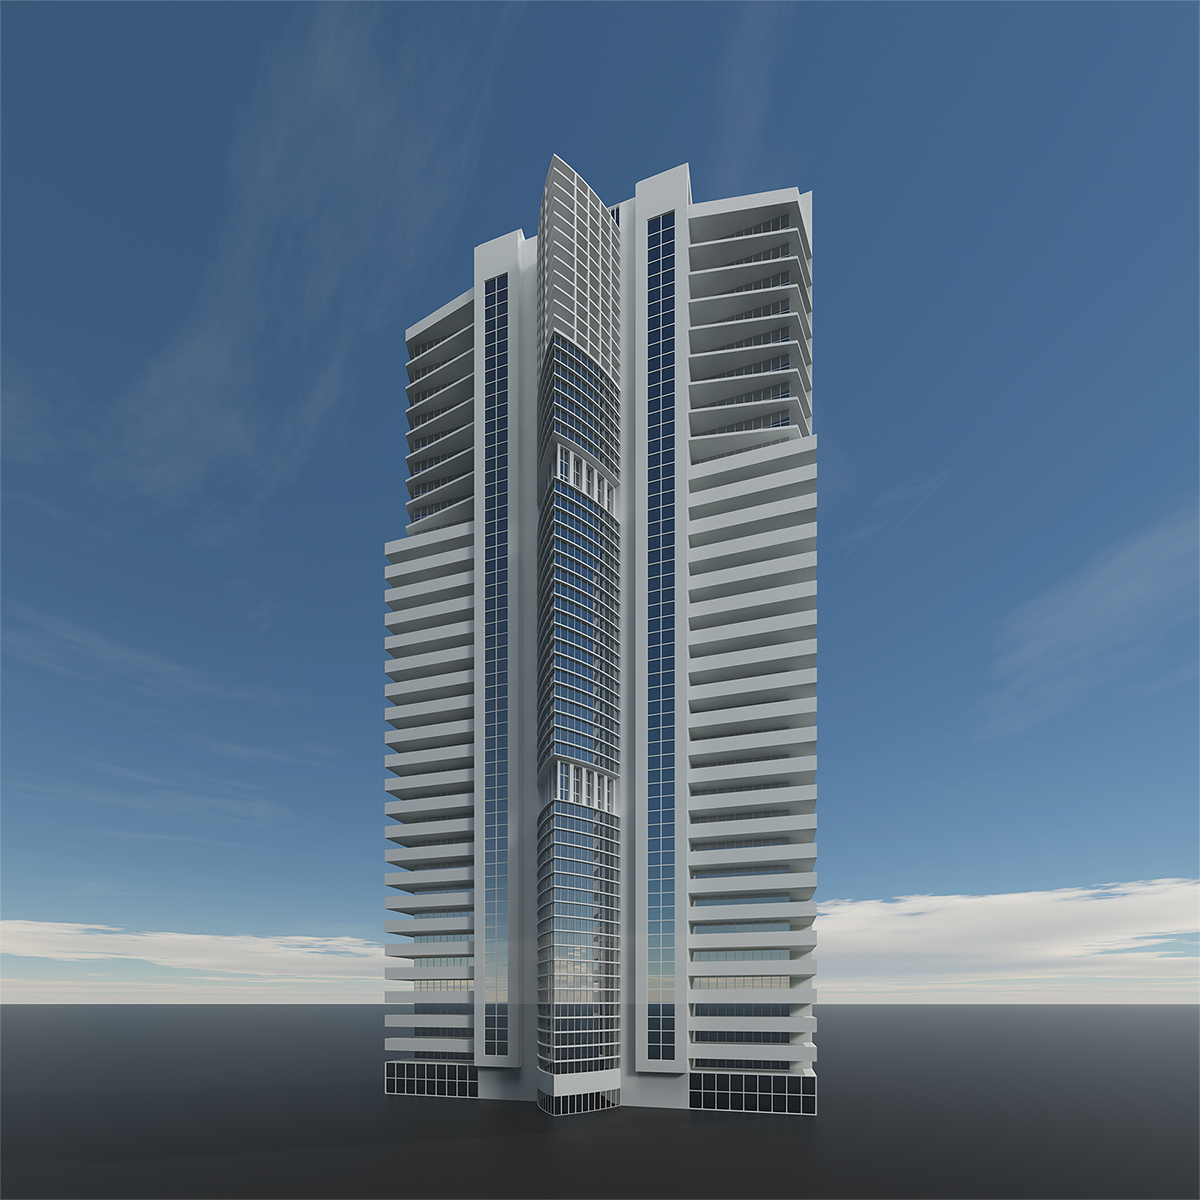 This was HomoSapiens SkyScrapers 004 1 - 2019 - This was HomoSapiens. SkyScrapers